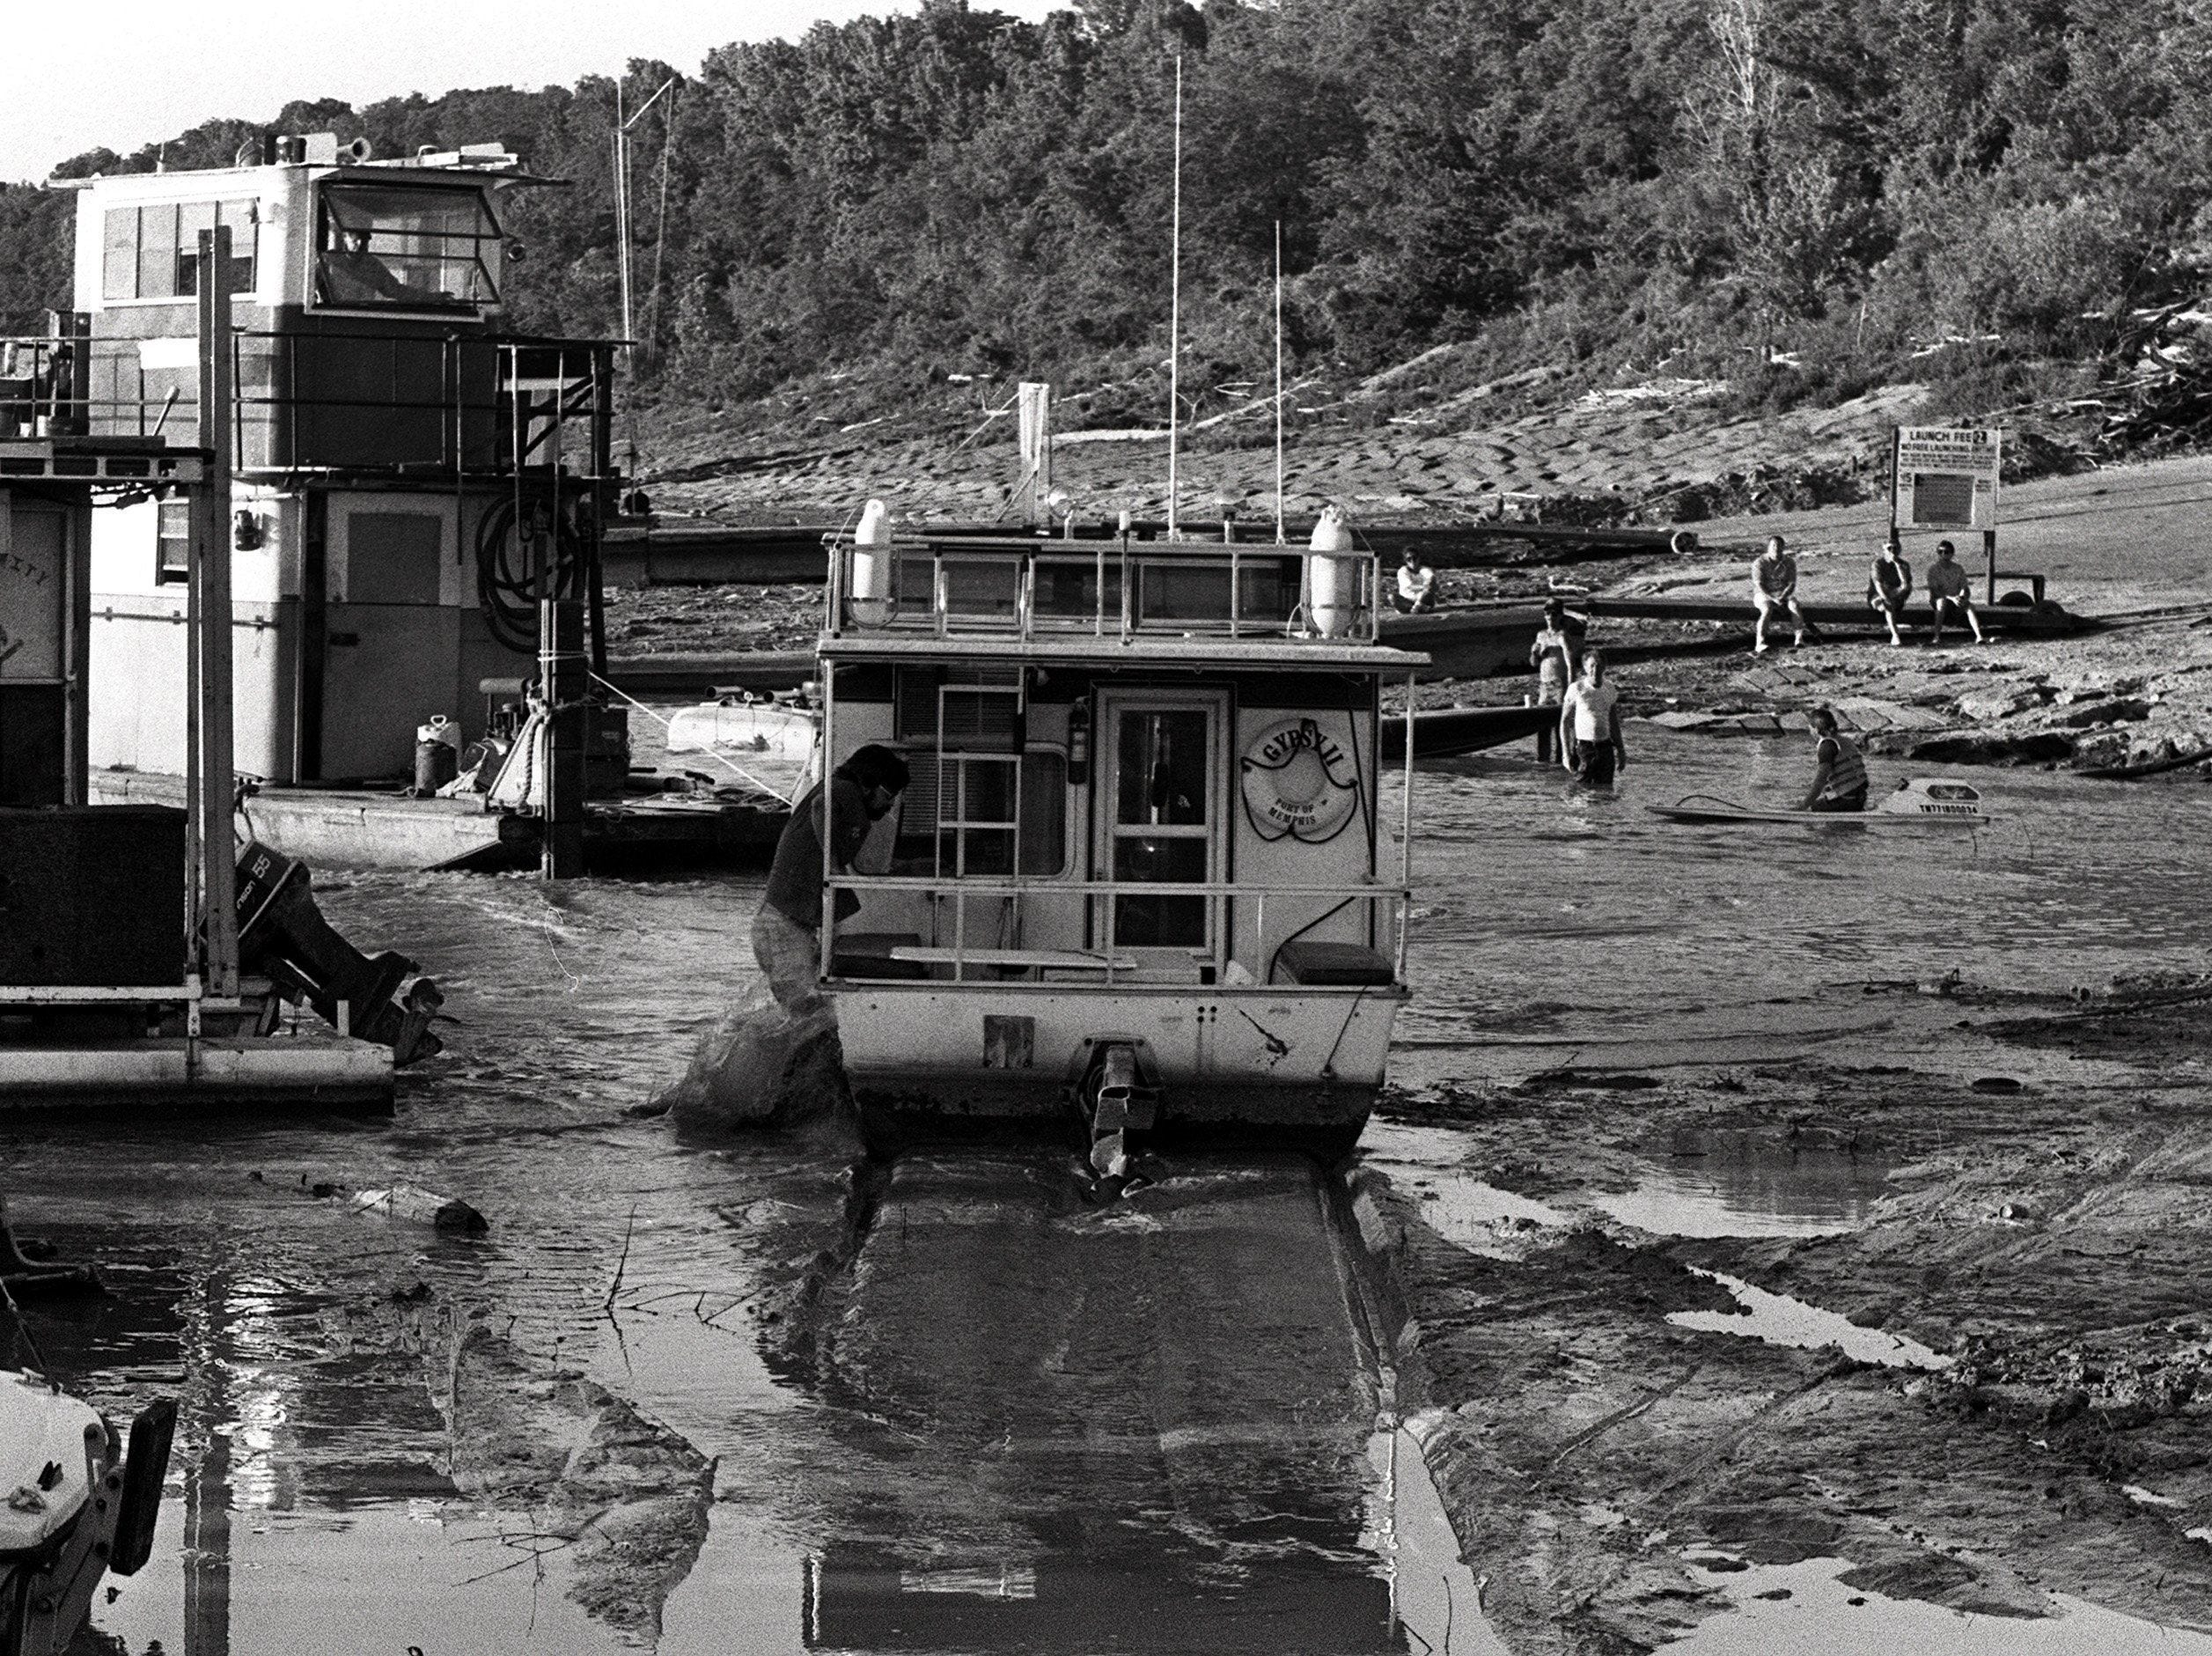 A fast drop on the Mississippi River had six pleasure boats in the mud and another half-dozen blocked off from the river in their slips at Buttercup Marina on McKellar Lake on 4 June 1988. The towboat Robin McCarter pulls the Gypsy II through mud to open water after the lake level dropped rapidly.